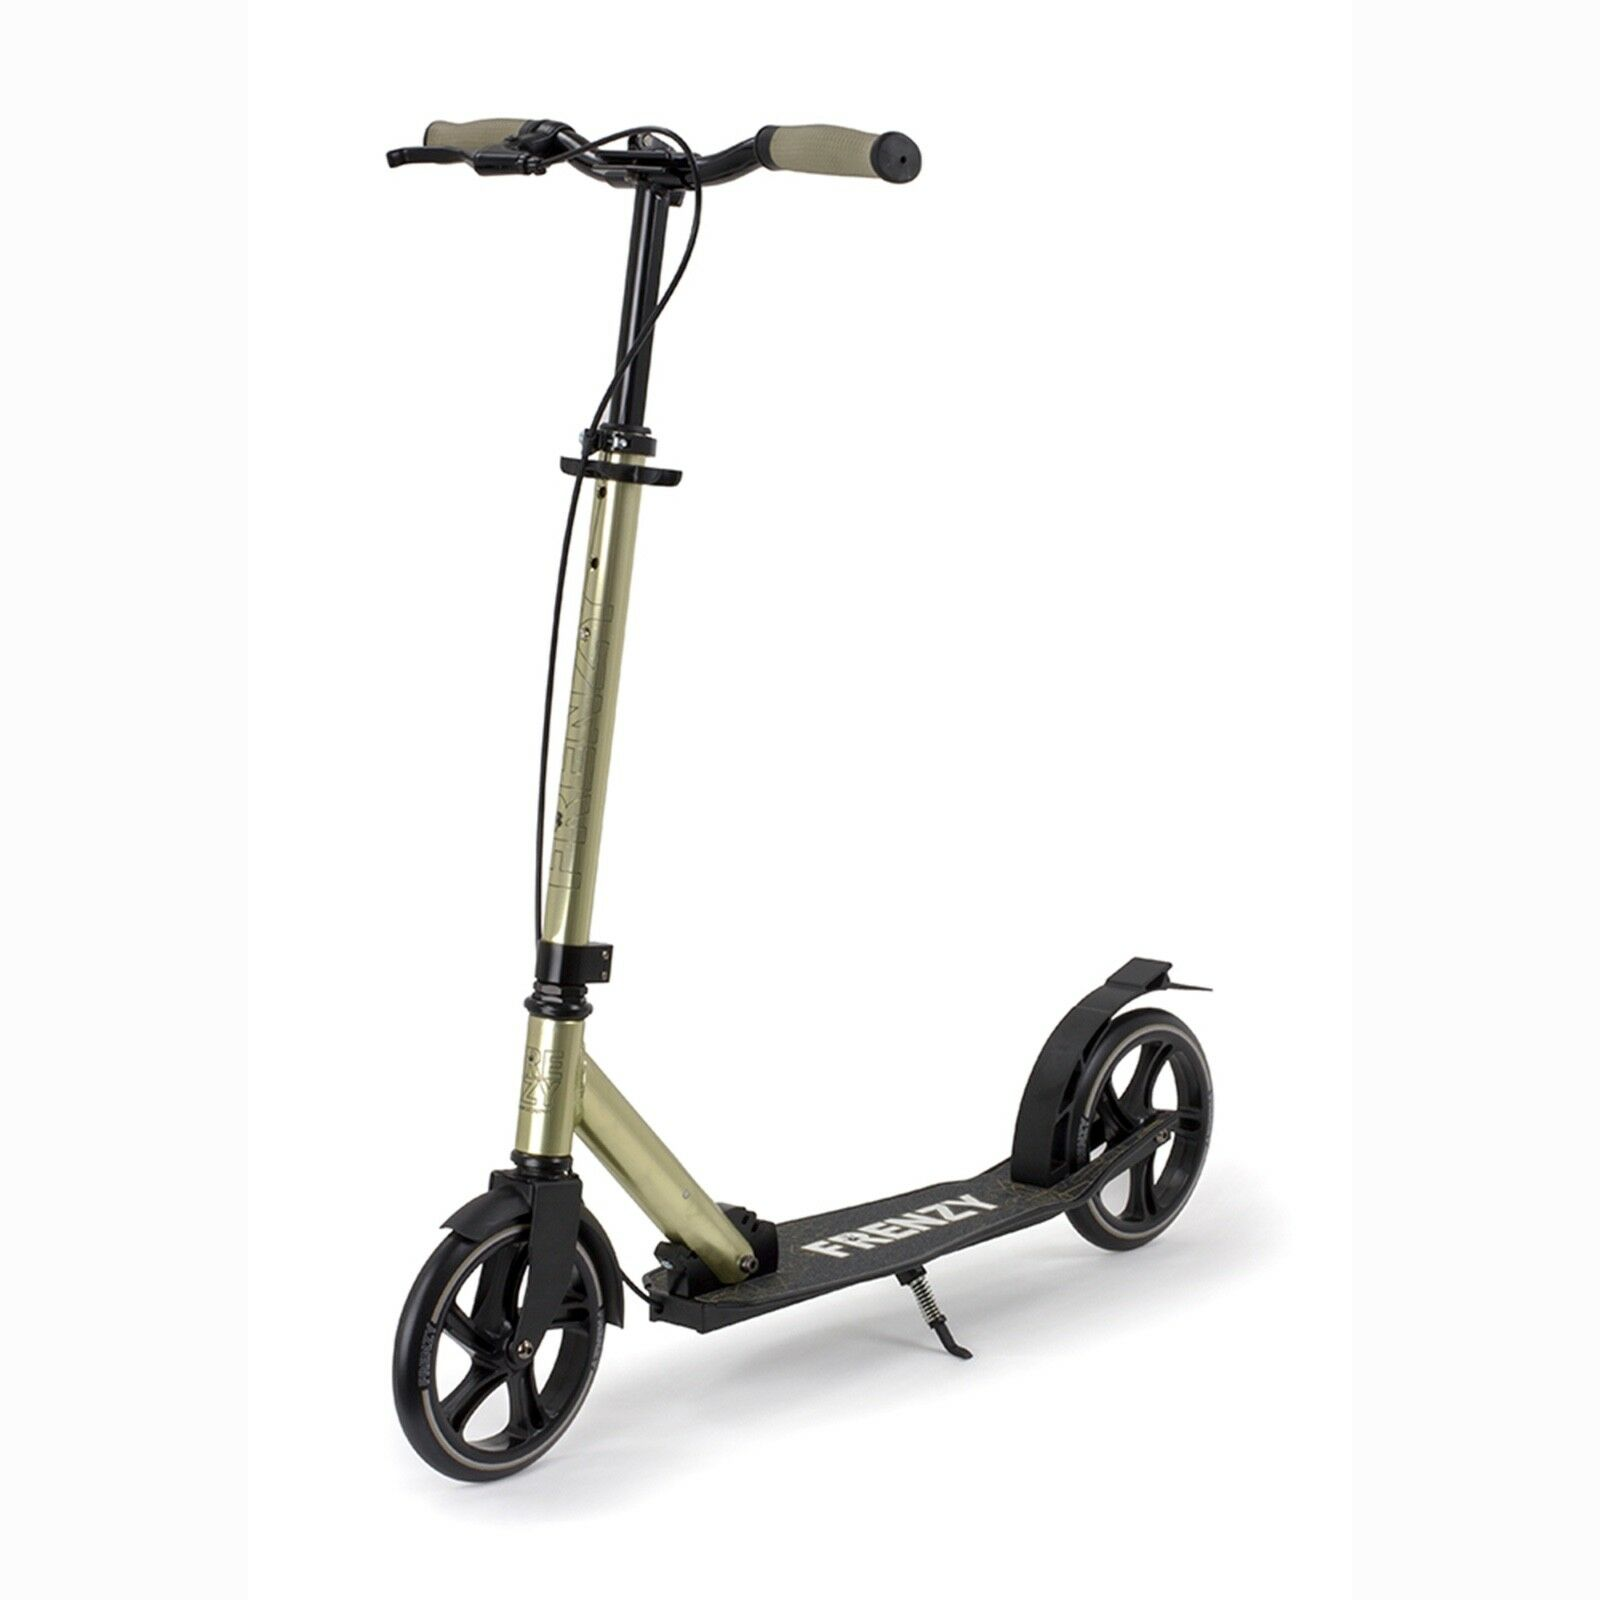 Frenzy Scooters Dual Brake Plus Recreational Scooter 205mm, Champagne